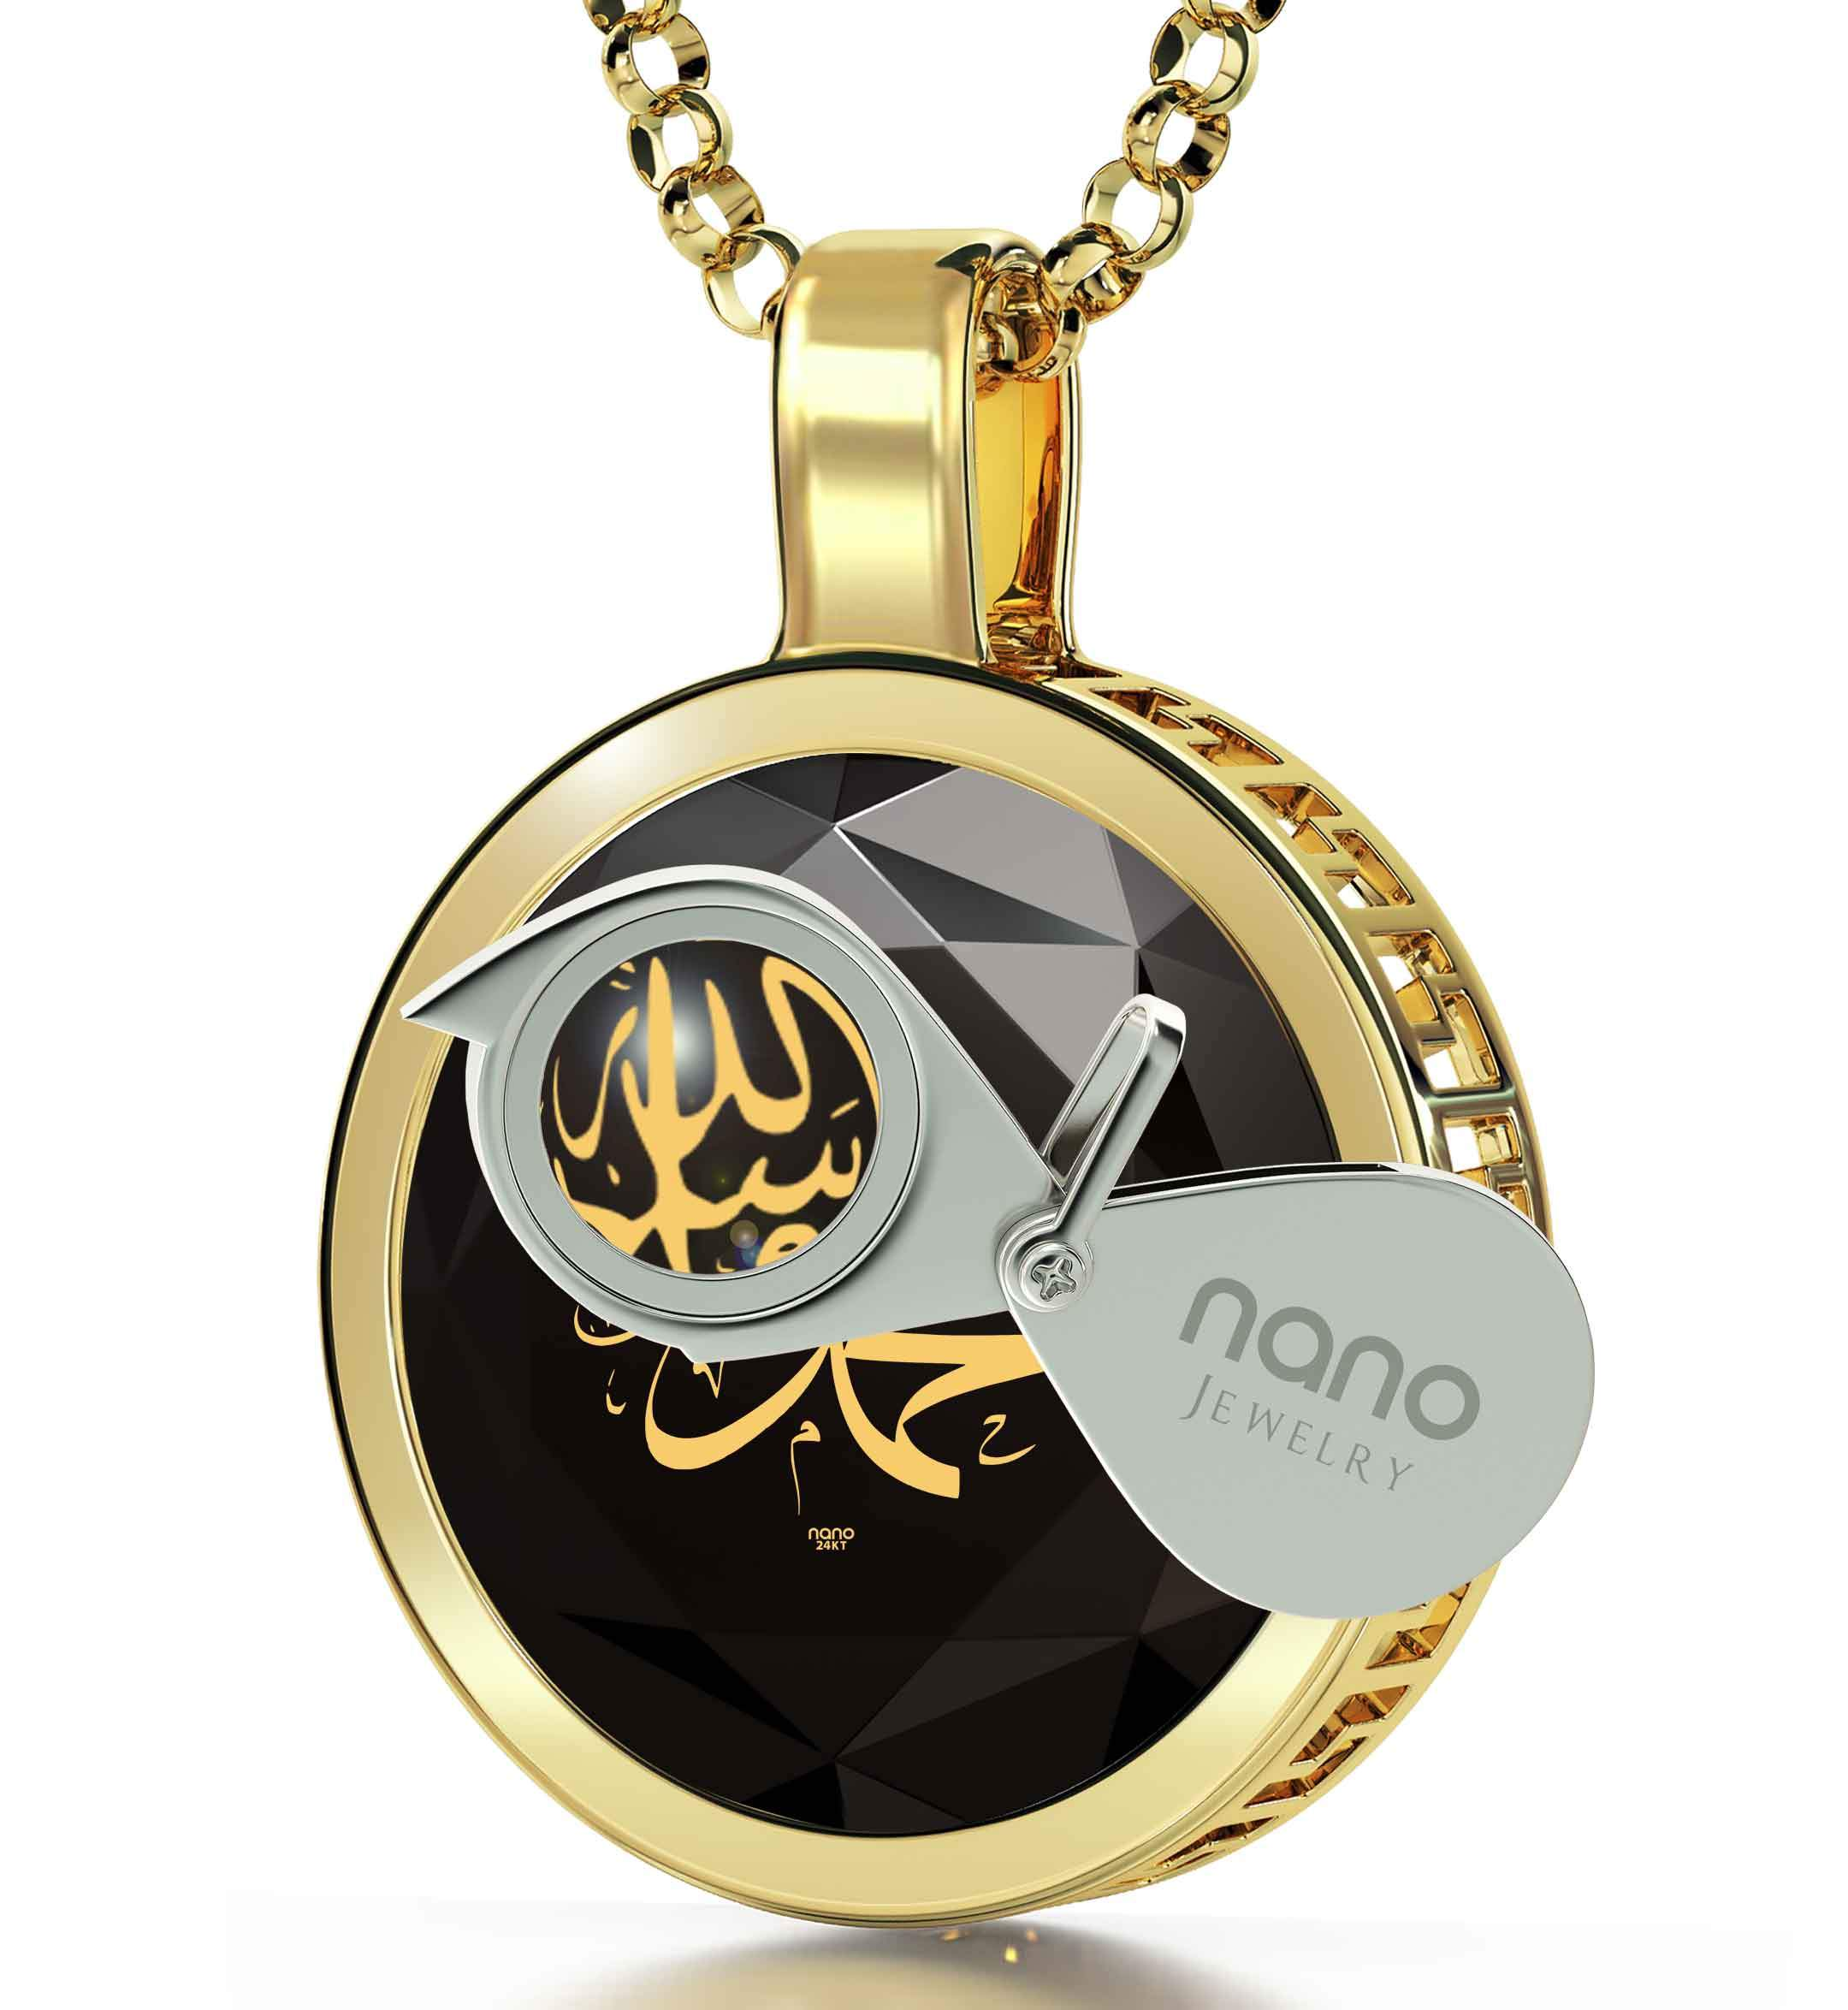 """Muhammad"" in 24k Imprint, Islam Jewelry for Him, Arabic Necklace, 14kt Gold Chain, Nano"